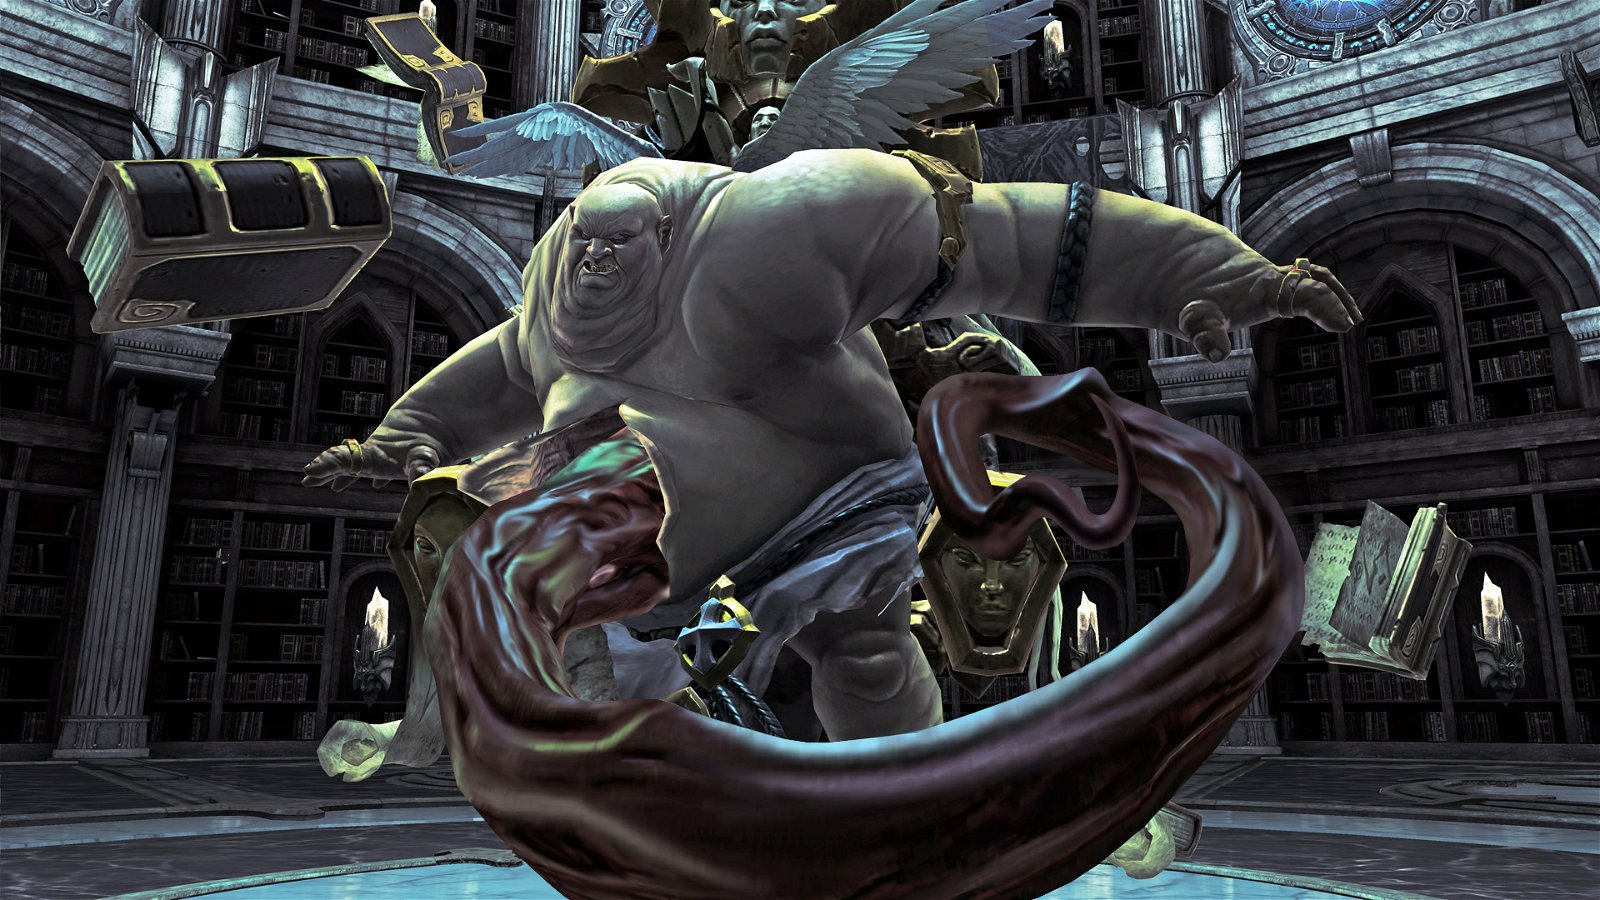 Darksiders Ii: Deathfinitive Edition Now Official - 2015-06-11 09:43:10